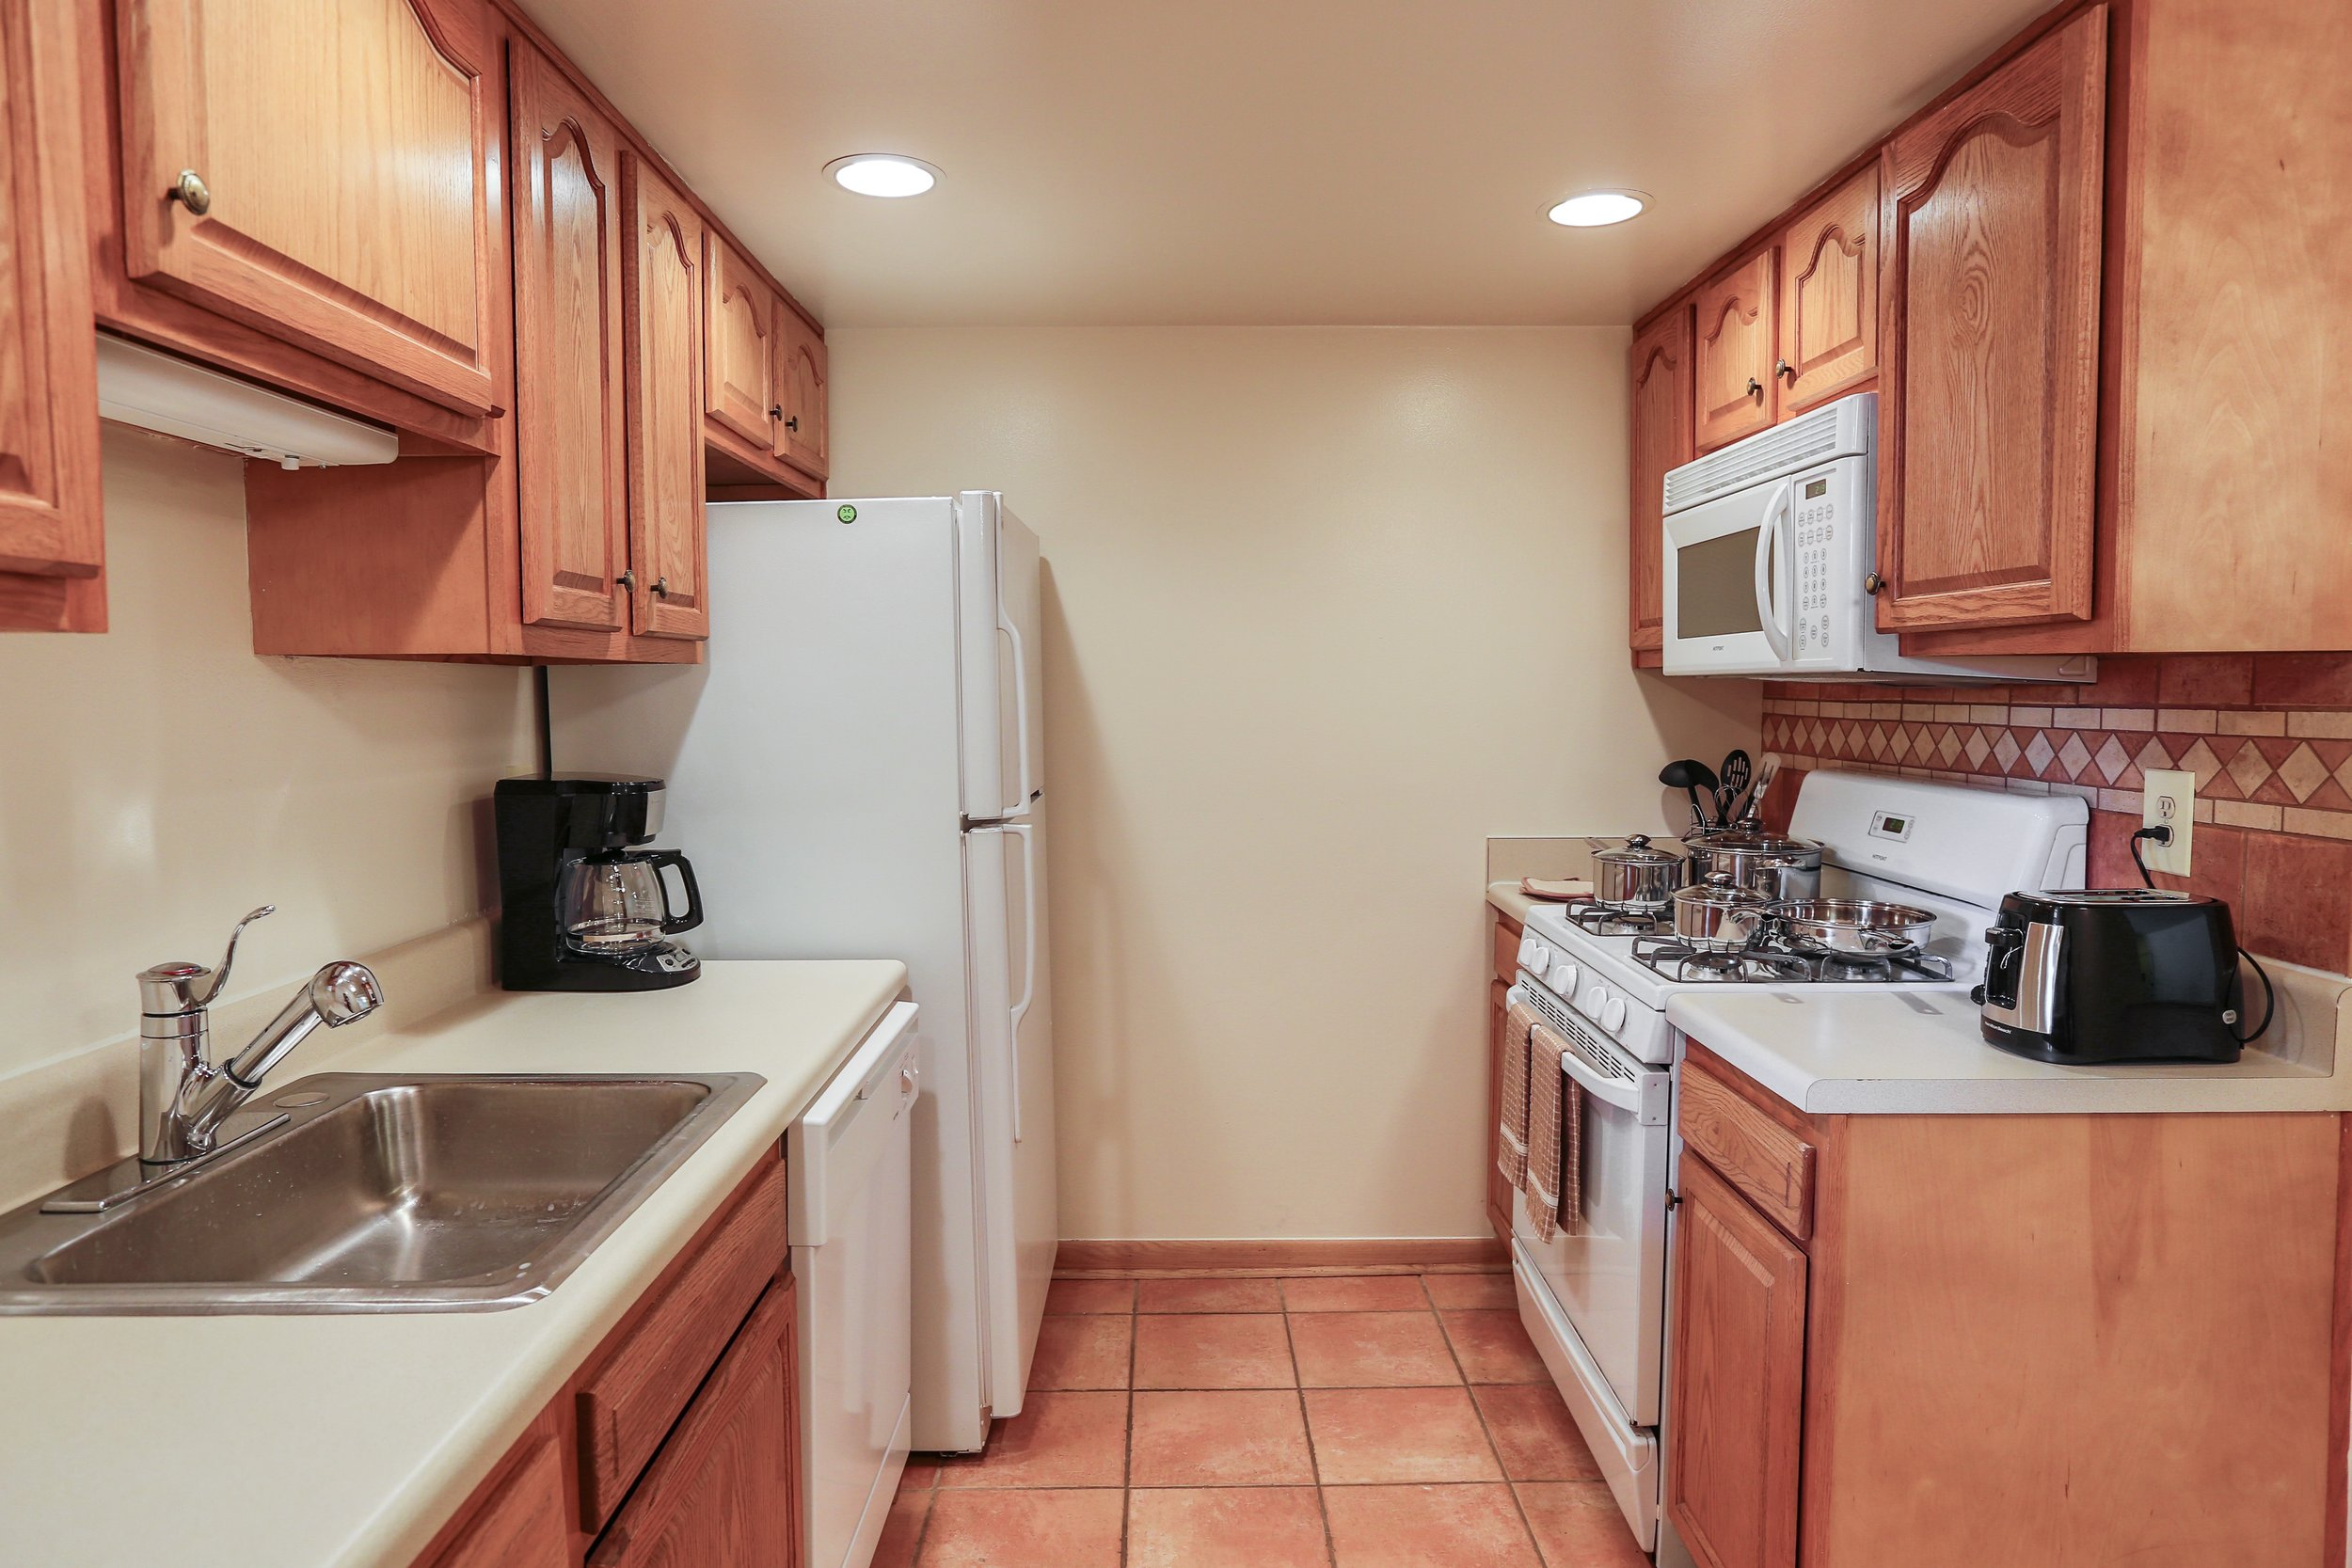 Above-Range Microwave, Oak Cabinetry, Deluxe Tile